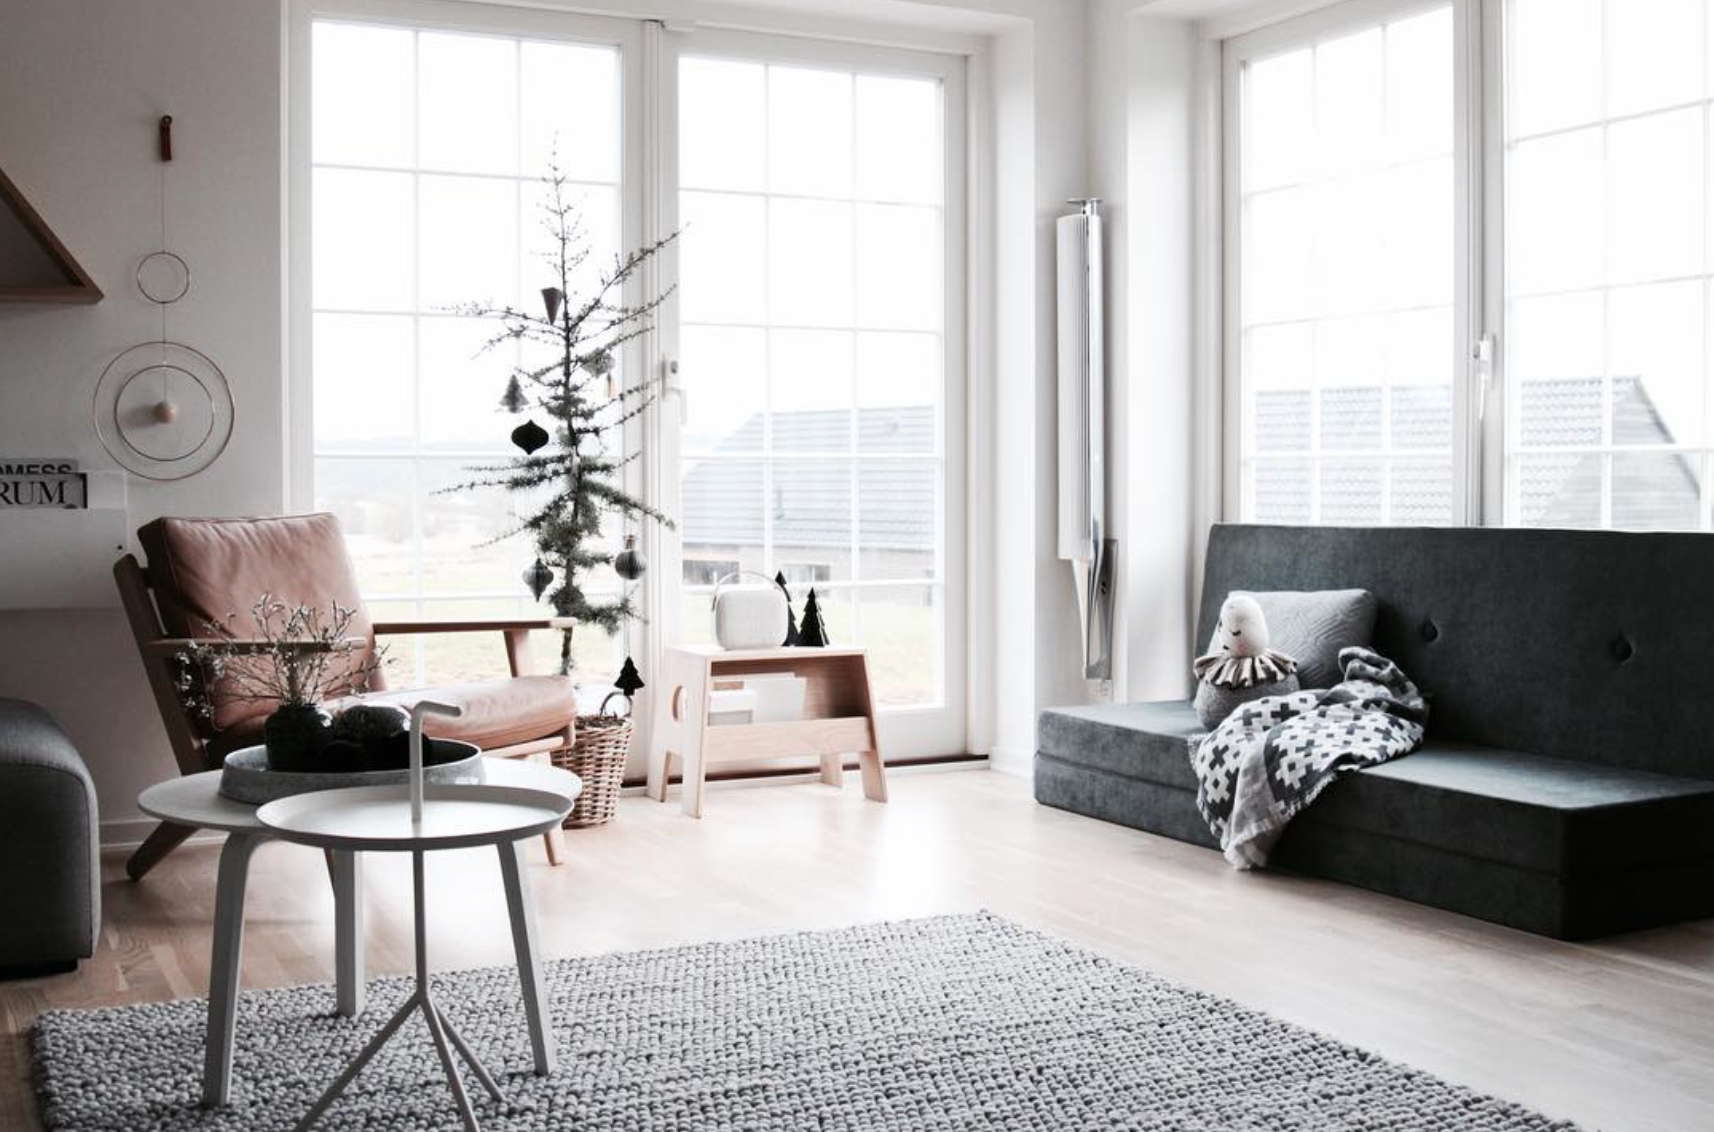 lillely_ shared this amazing Scandinavian B&O Home on Instagram ...